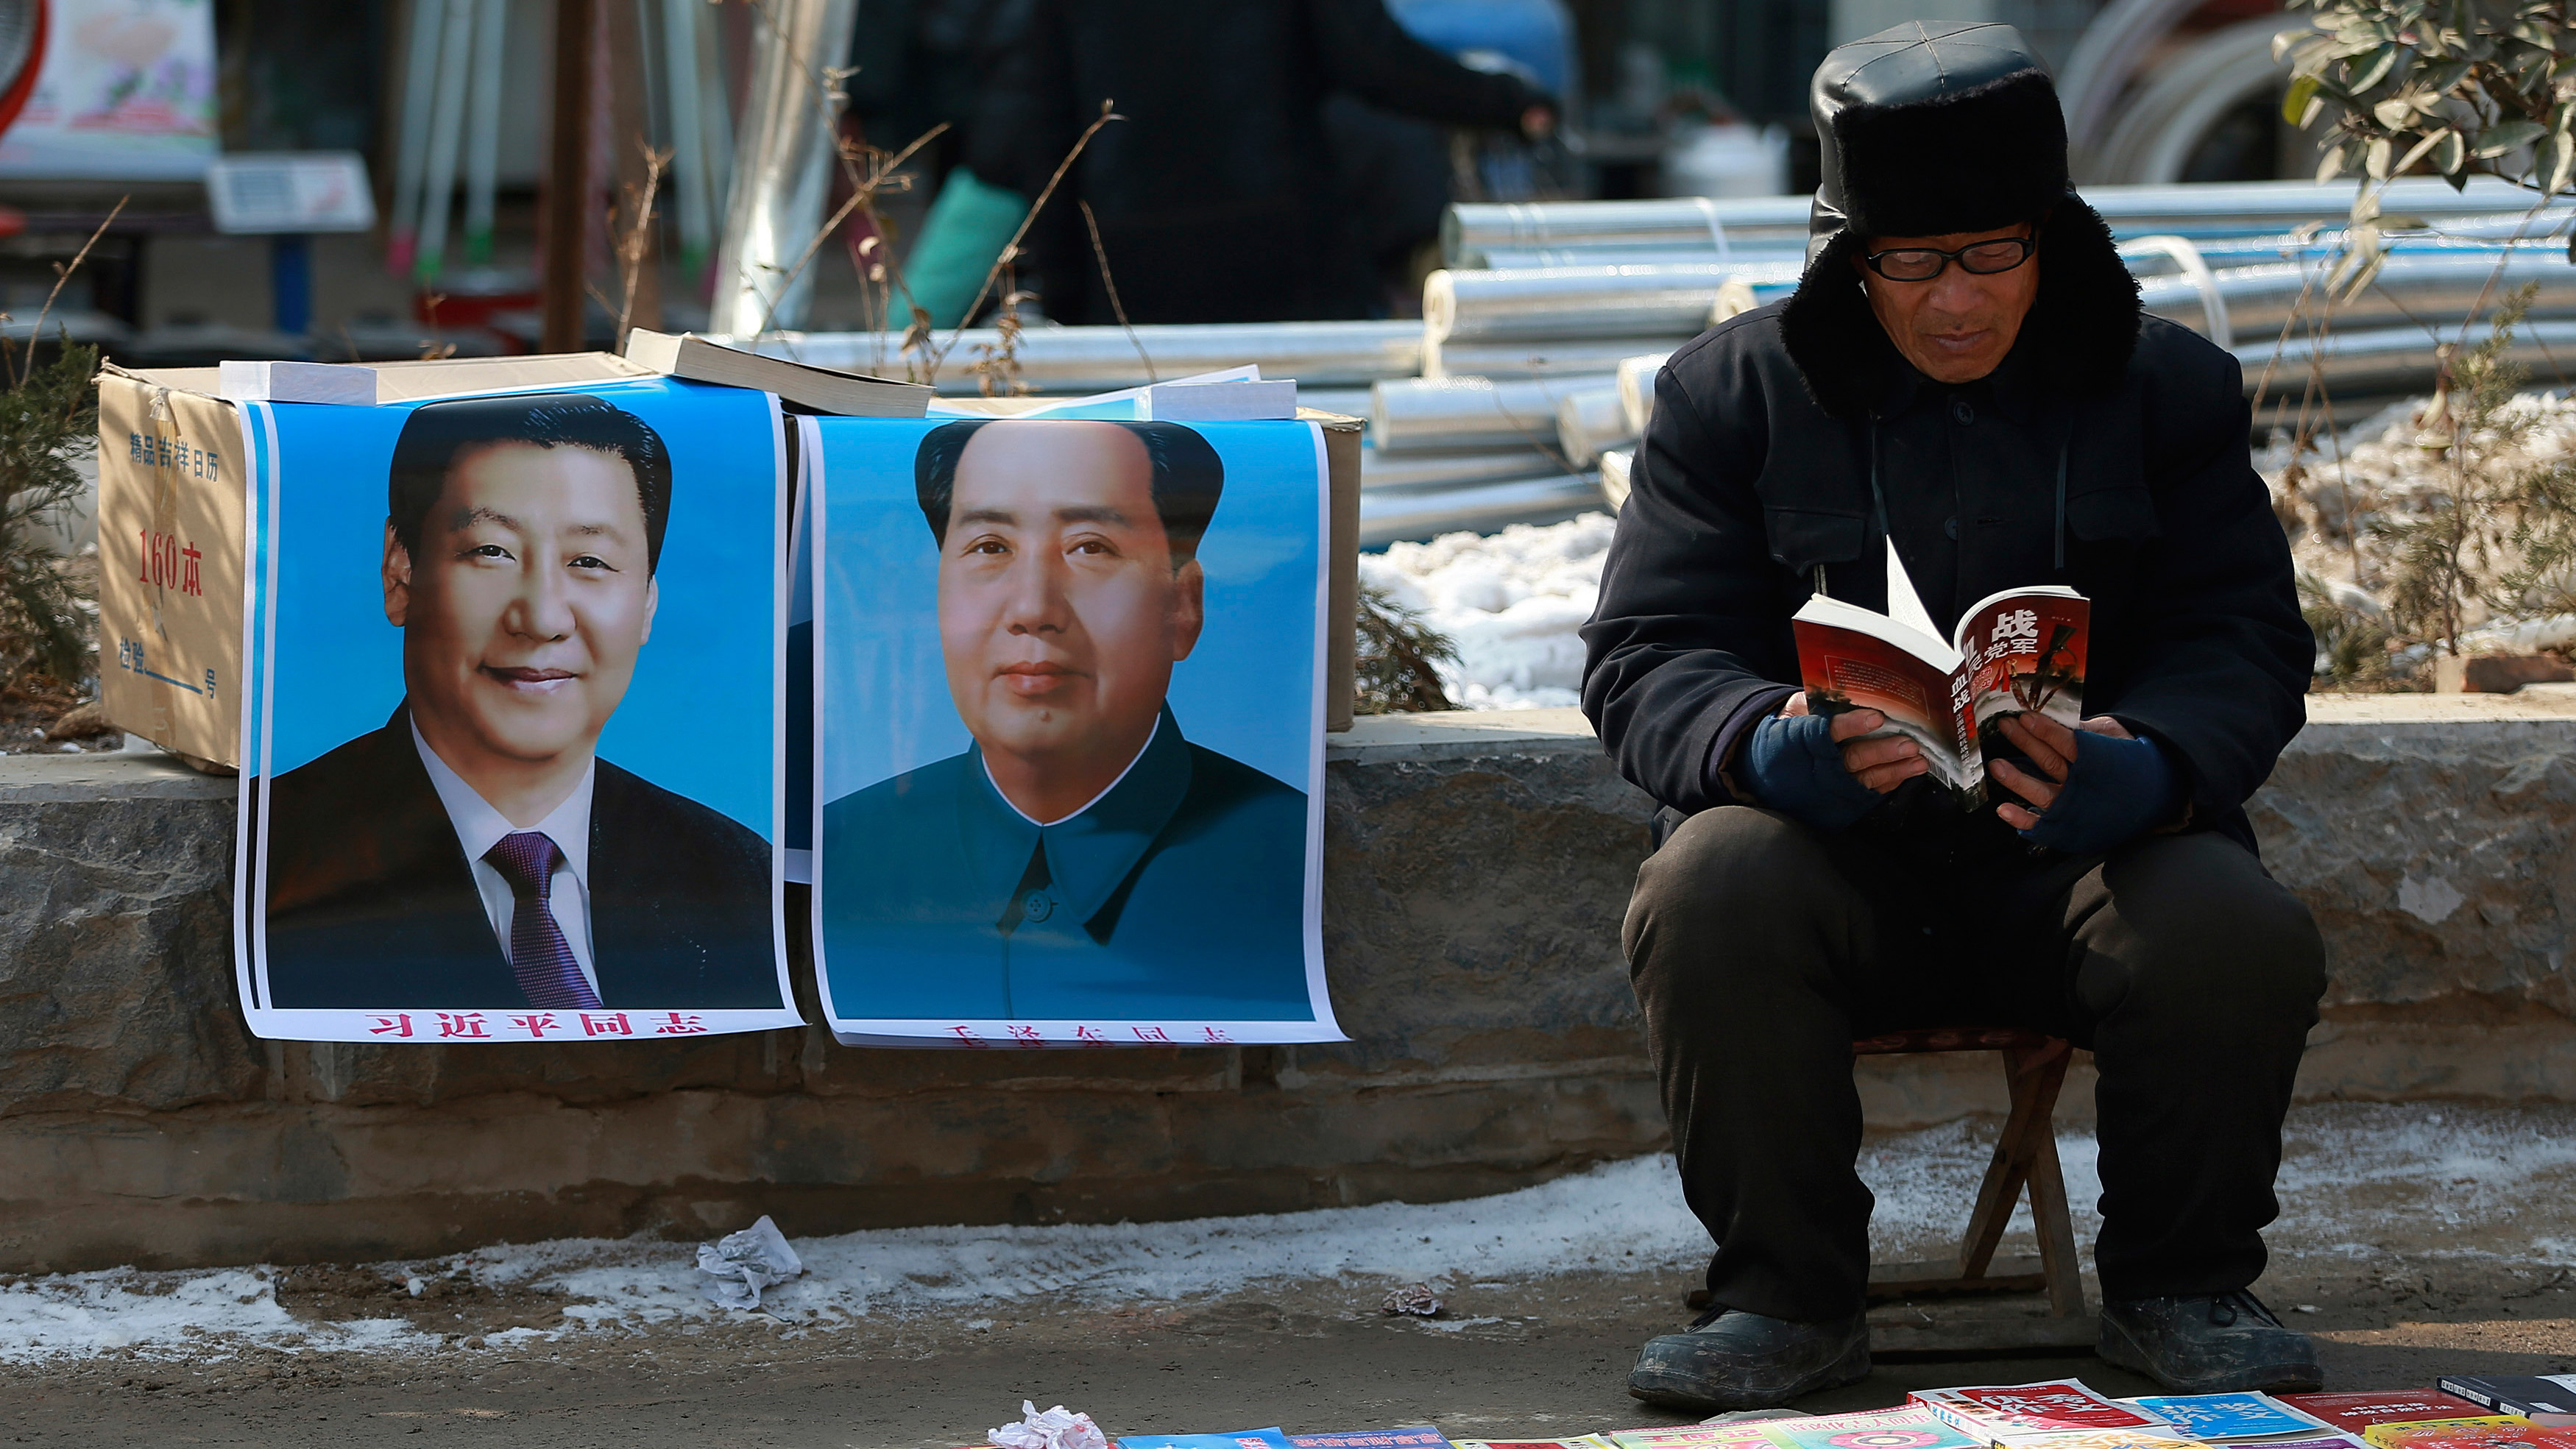 A book vendor reads a book as he waits for customer next to portraits of Chinese President Xi Jinping (L) and late Chairman Mao Zedong